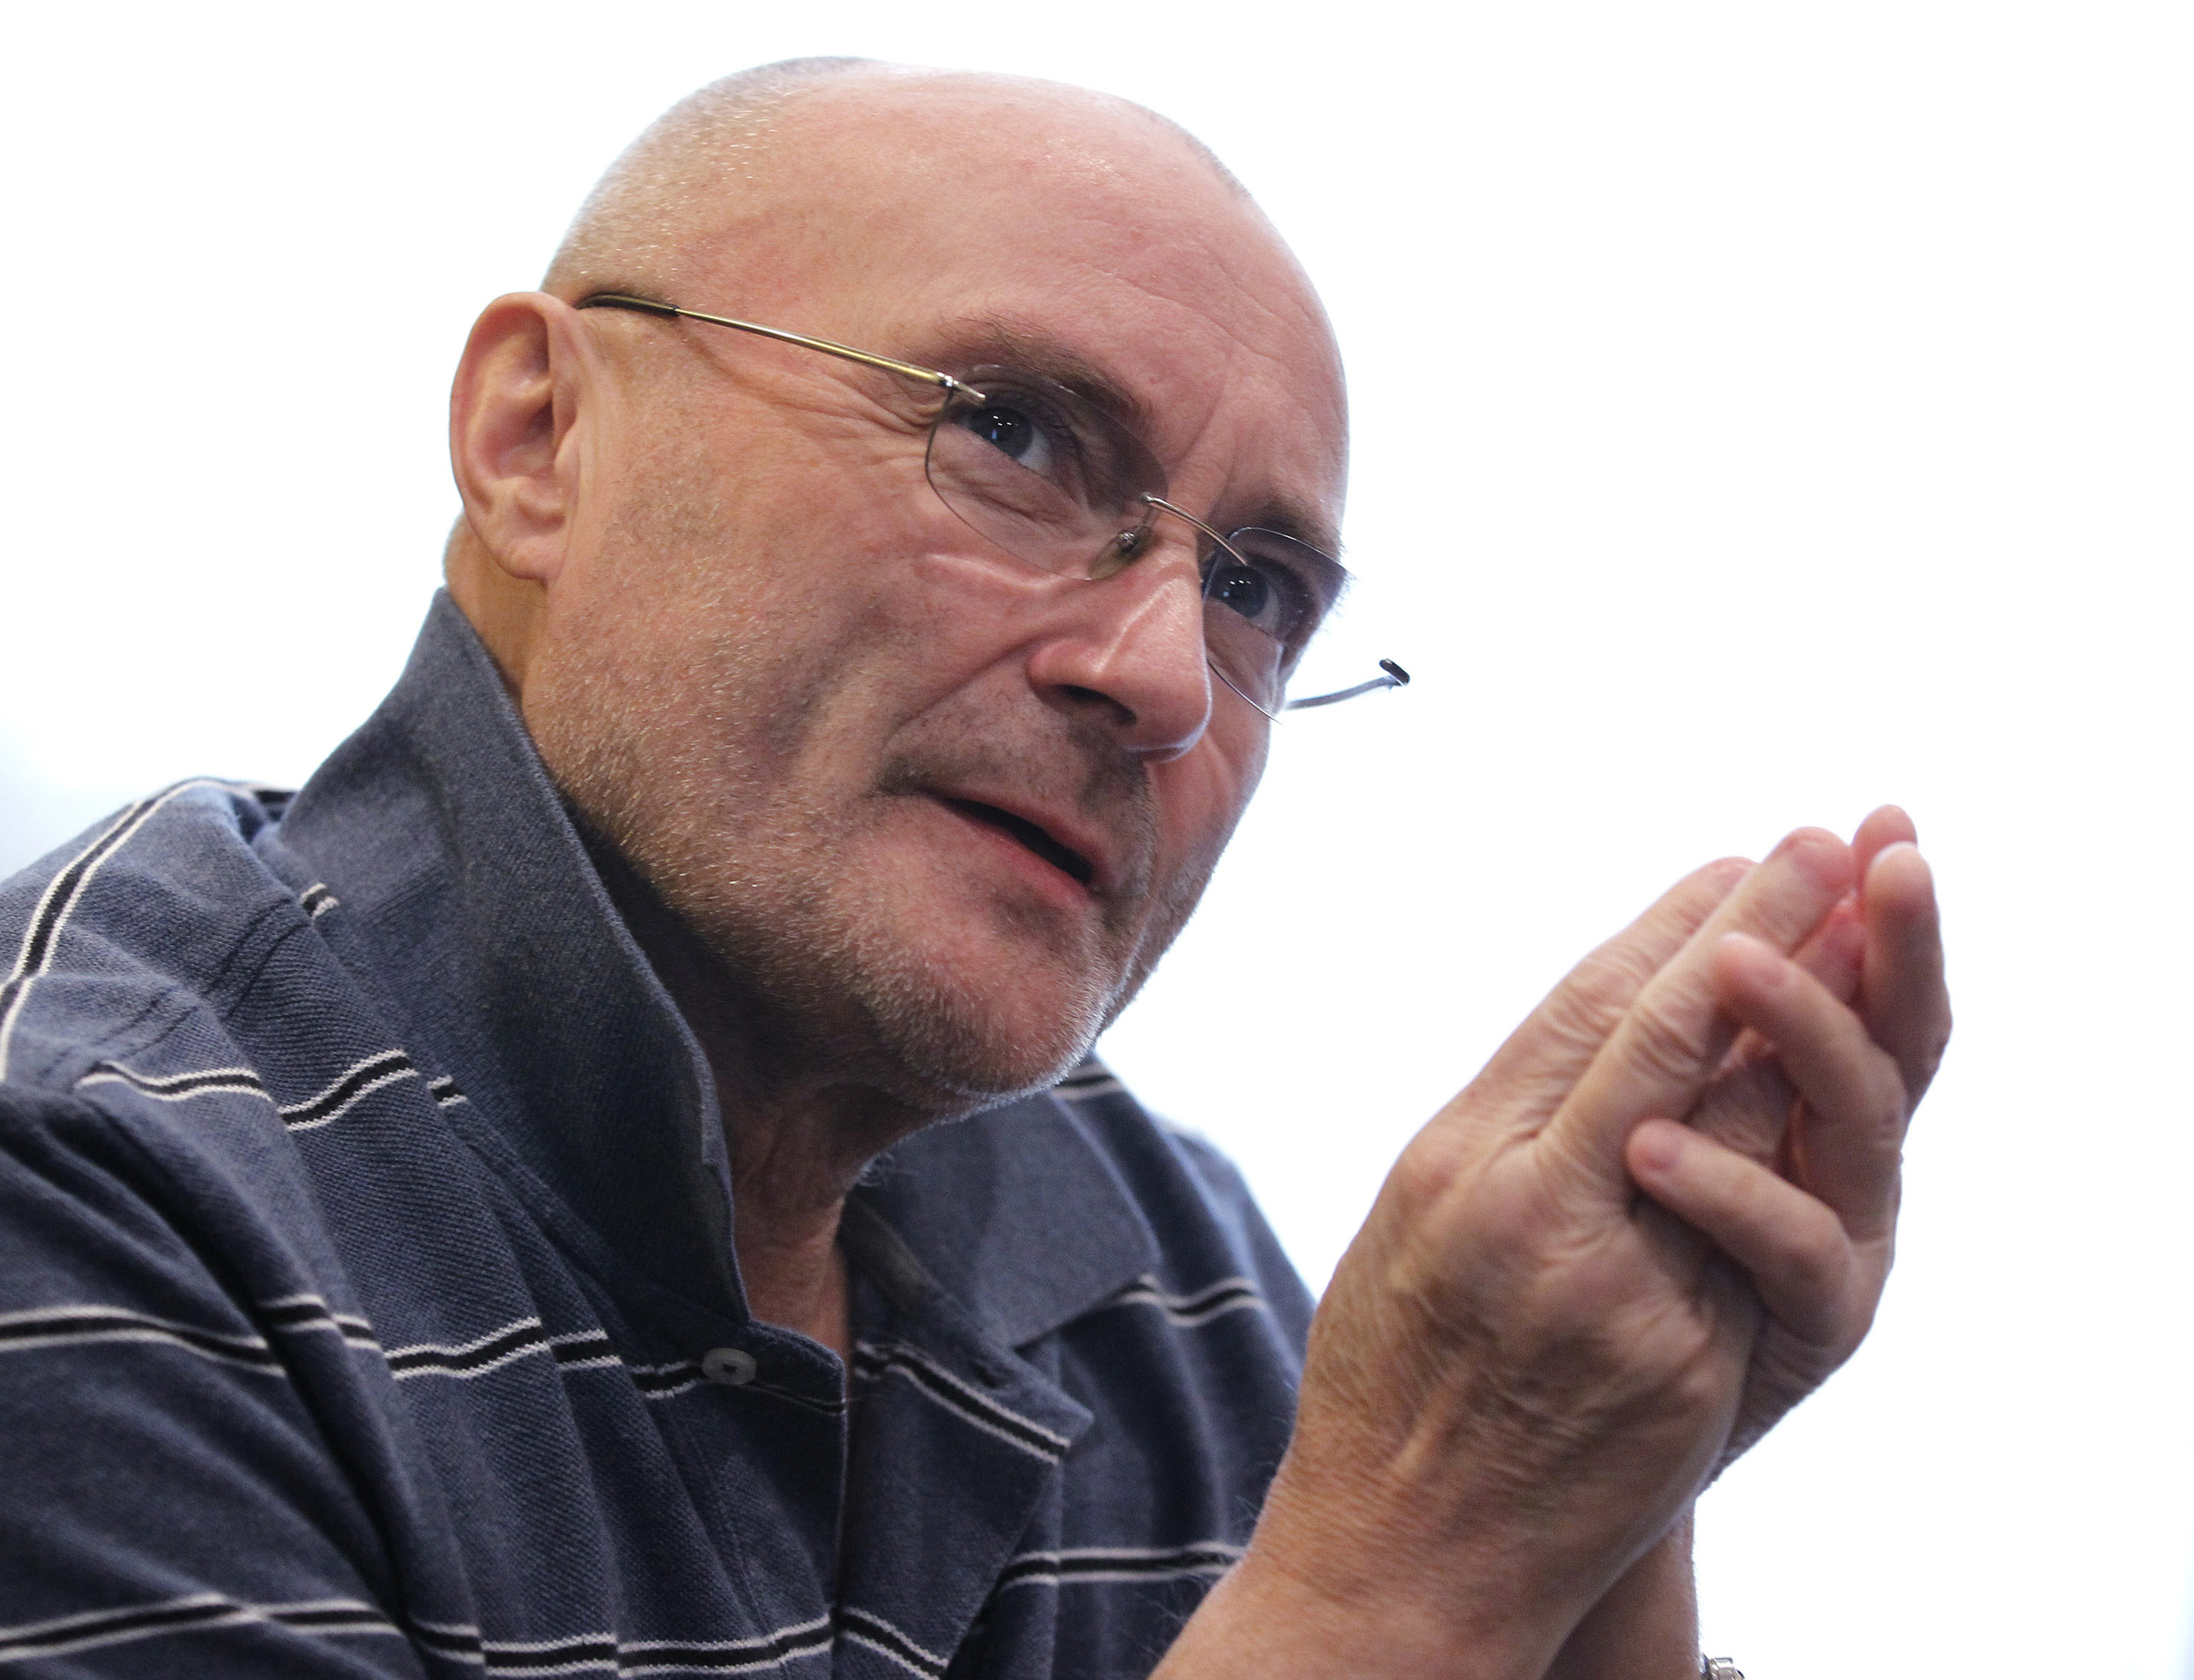 Phil Collins hospitalized after fall, postpones tour